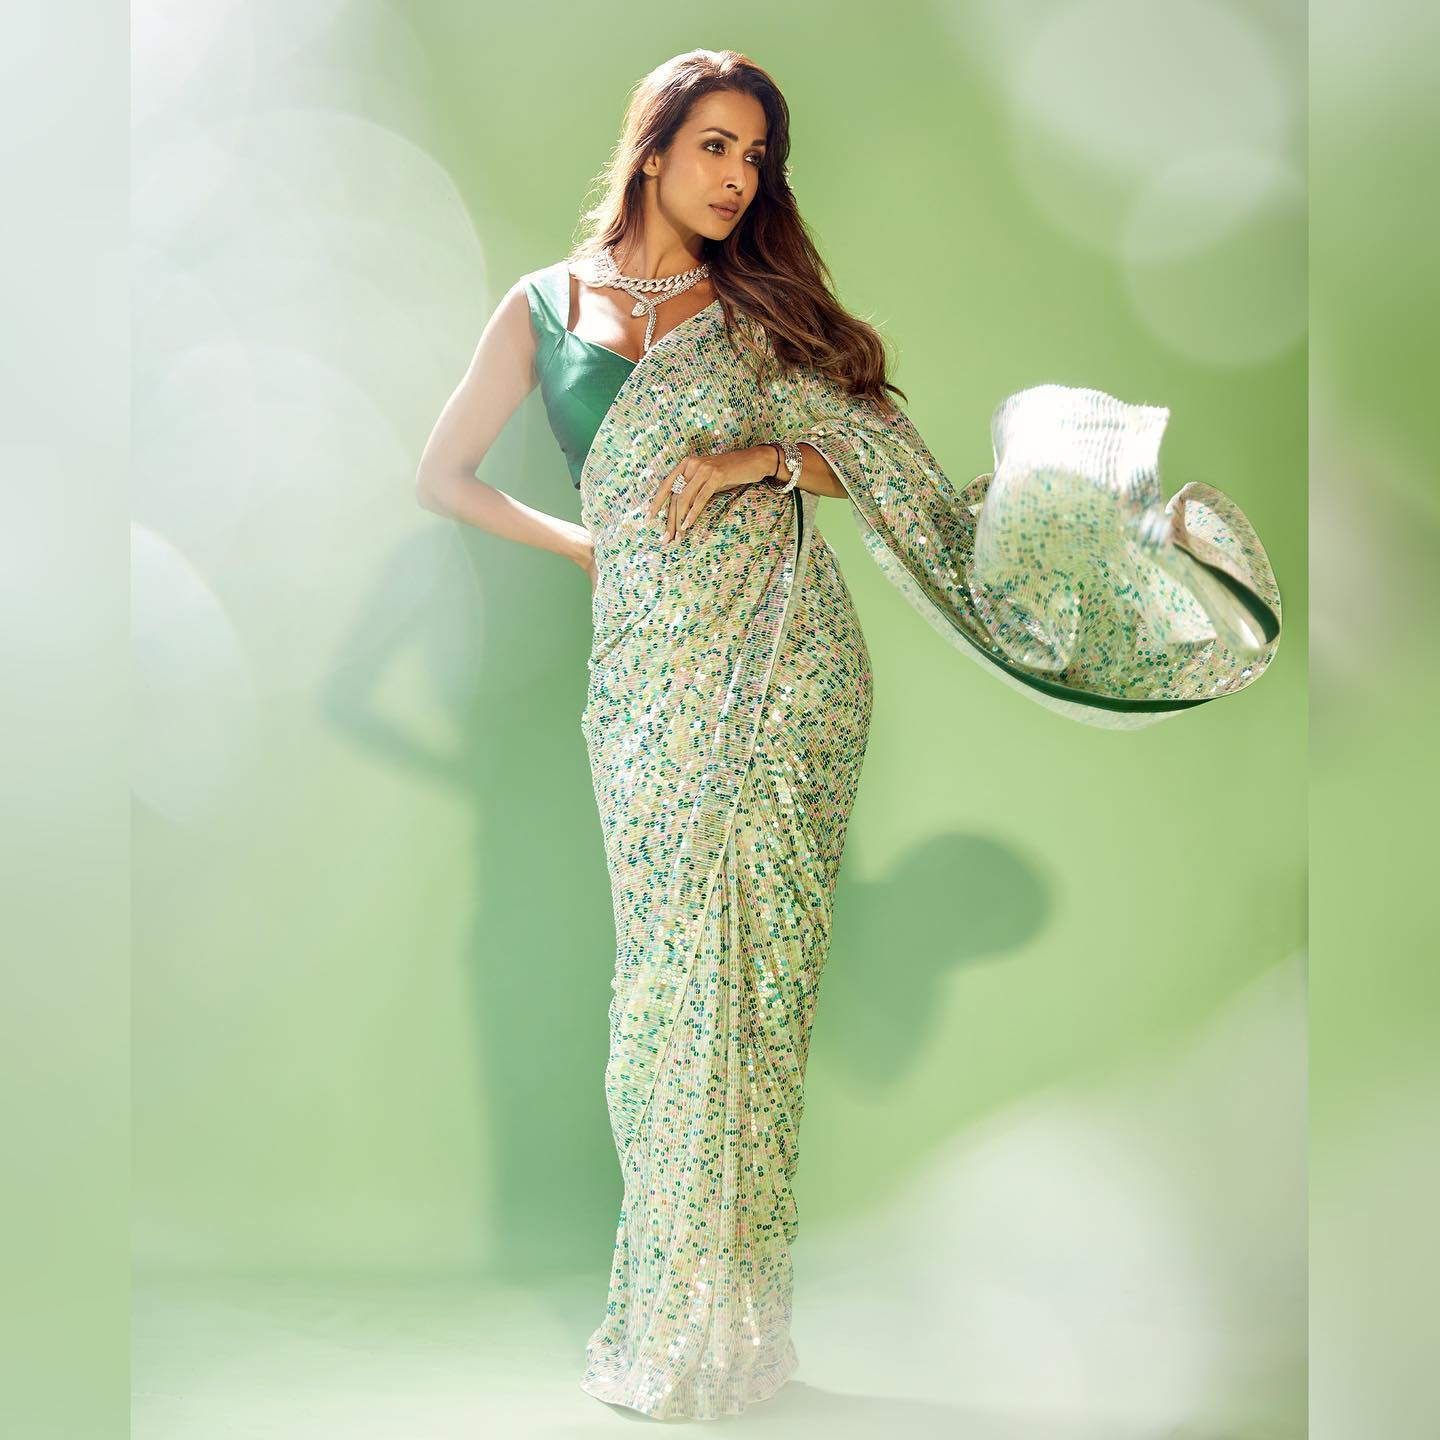 An exquisite My mm saree classic that soars with vivid craftsmanship  the spectacular Malaika Arora glistens in the glamour of green apple. Muse: Malaika Arora.  Outfit: Manish Malhotra. 2021-10-03